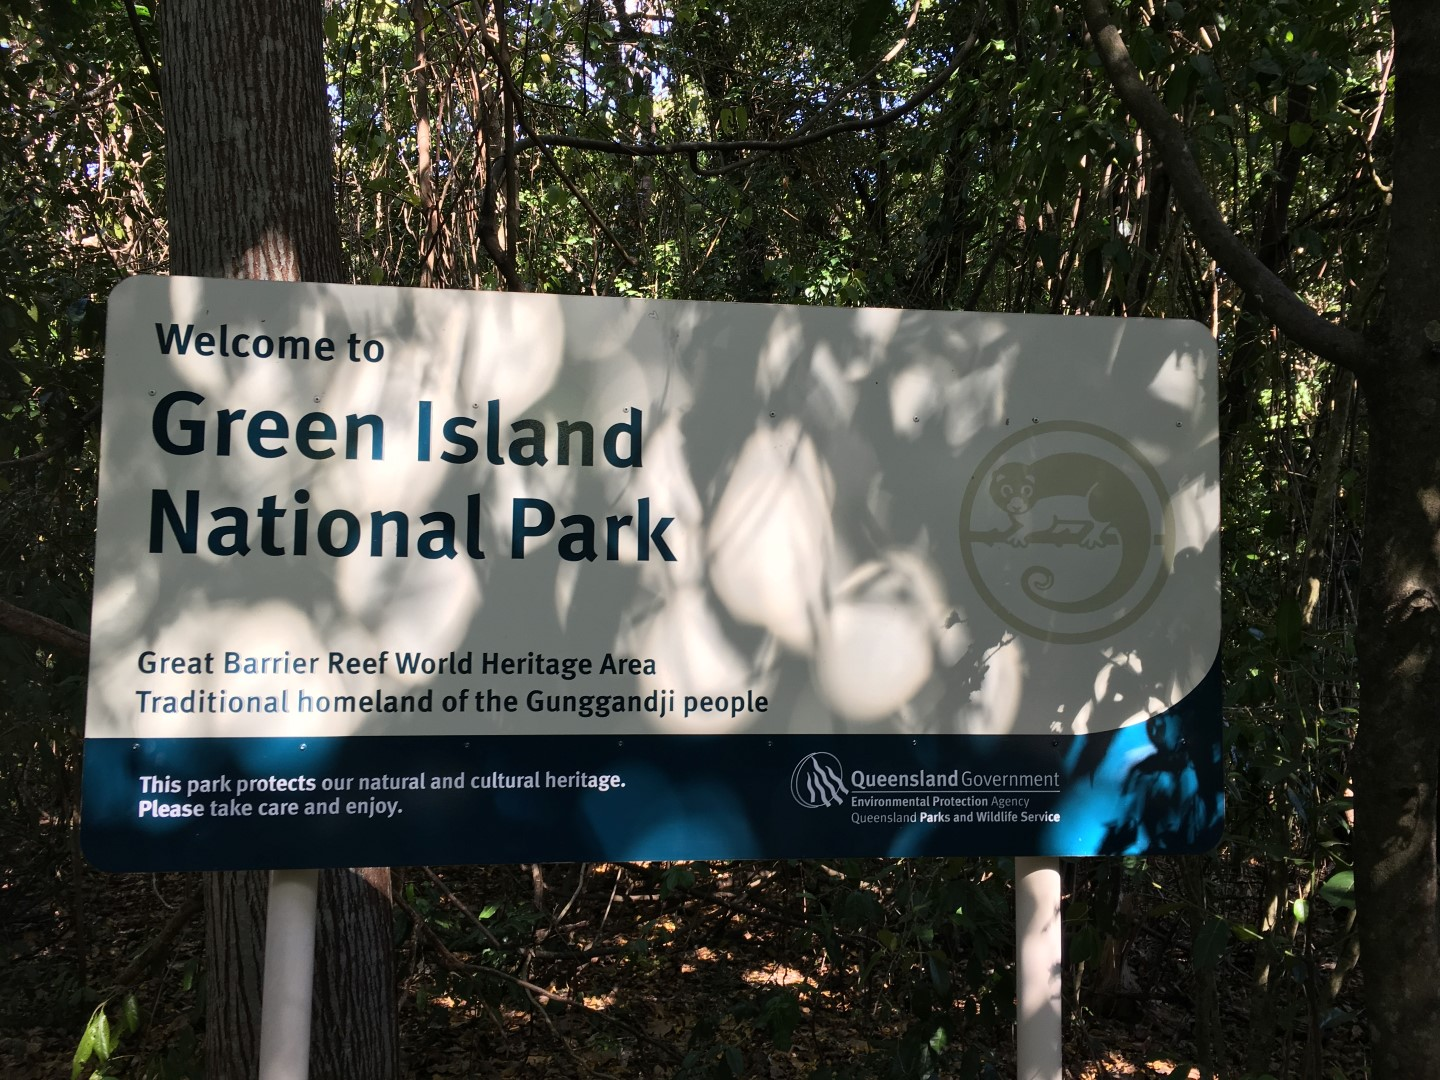 GREEN ISLAND NATIONAL PARK